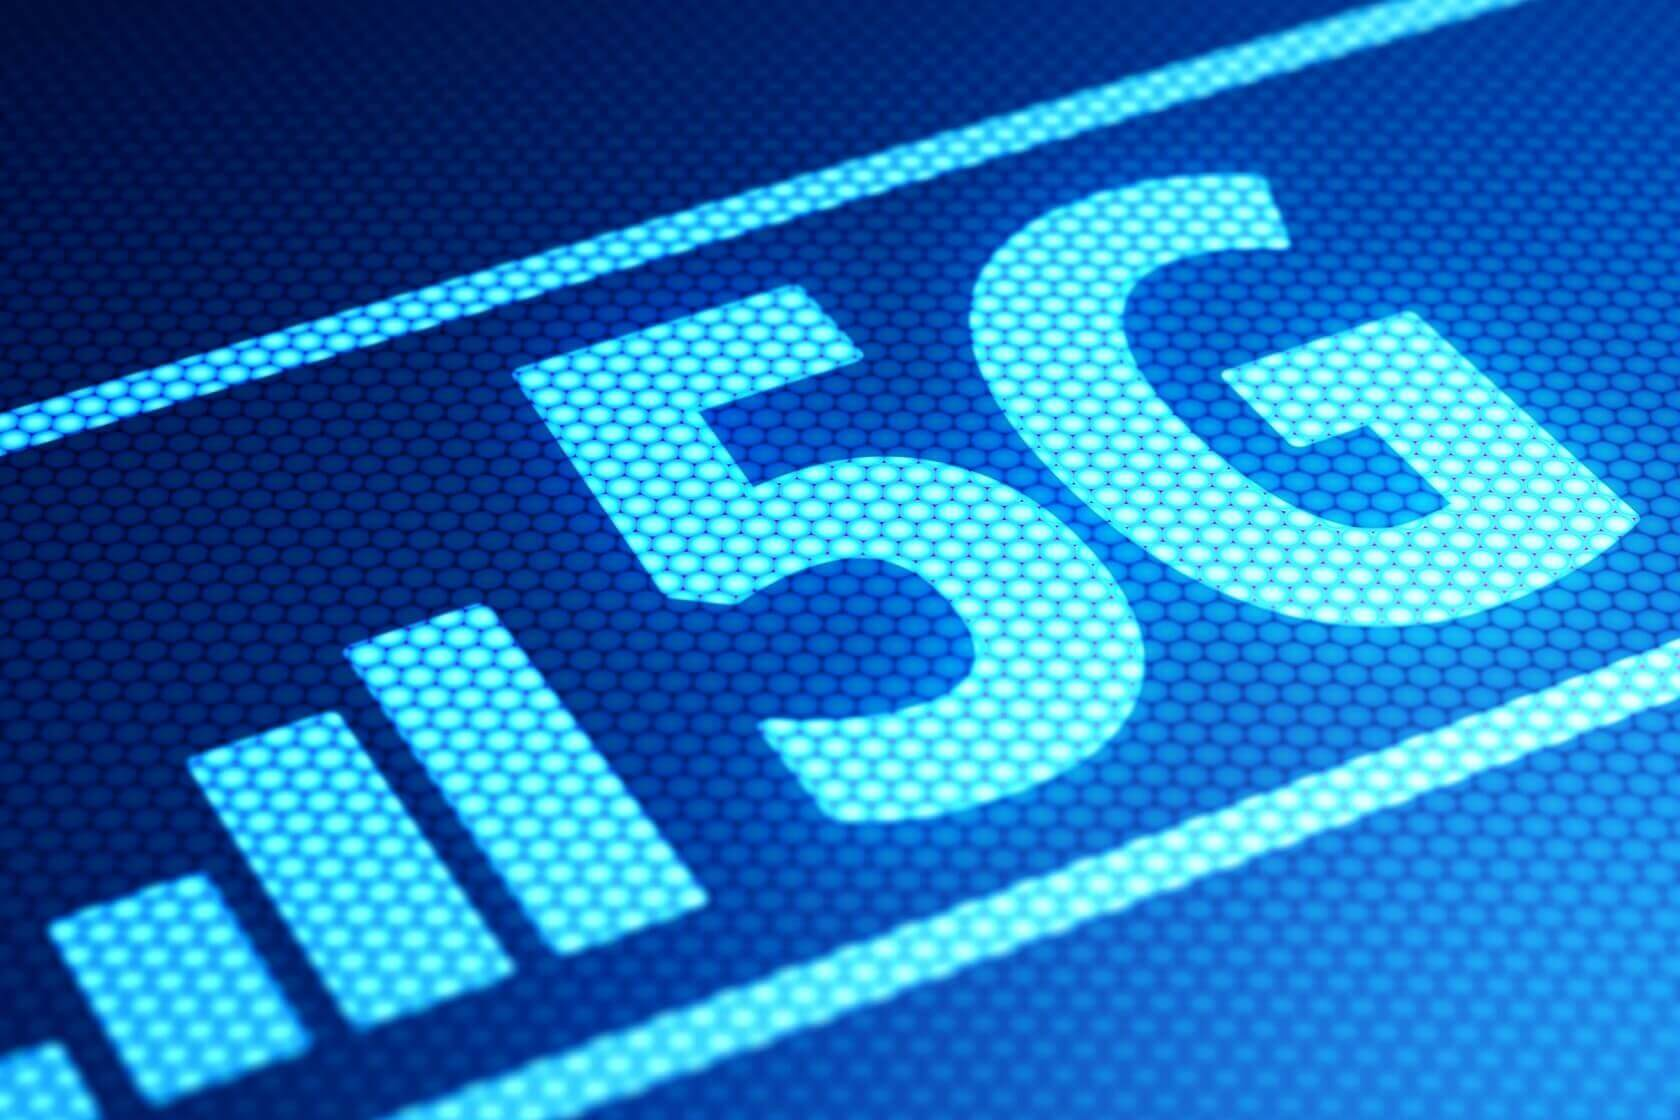 AT&T brings its 5G network to six more cities, including NYC, Washington DC, and Las Vegas